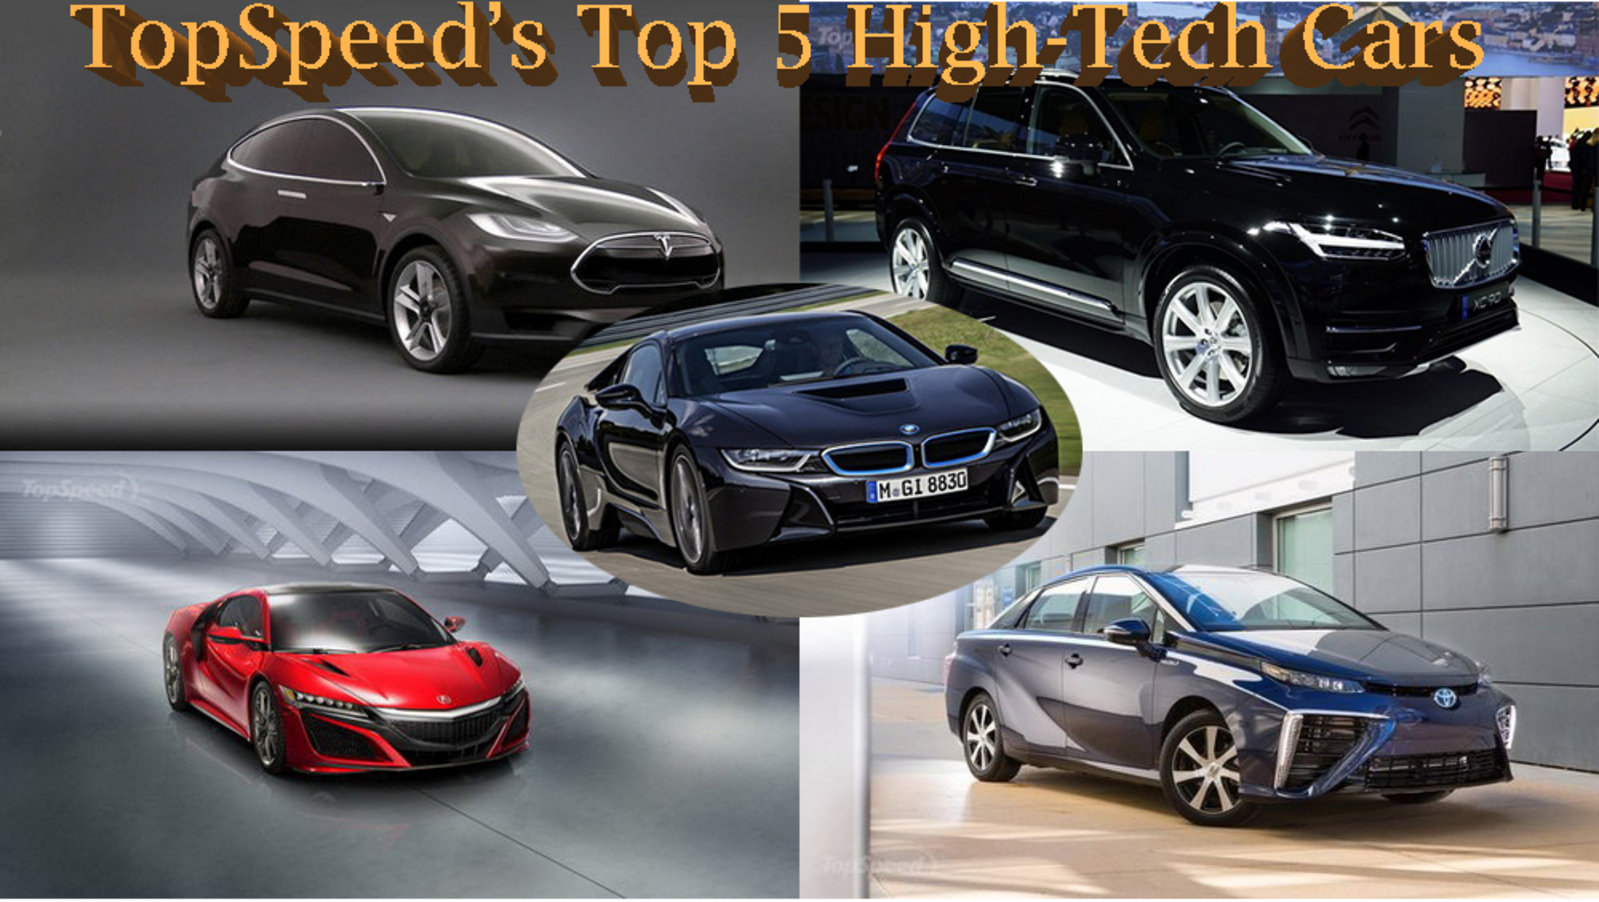 topspeed 39 s top 5 high tech cars news top speed. Black Bedroom Furniture Sets. Home Design Ideas